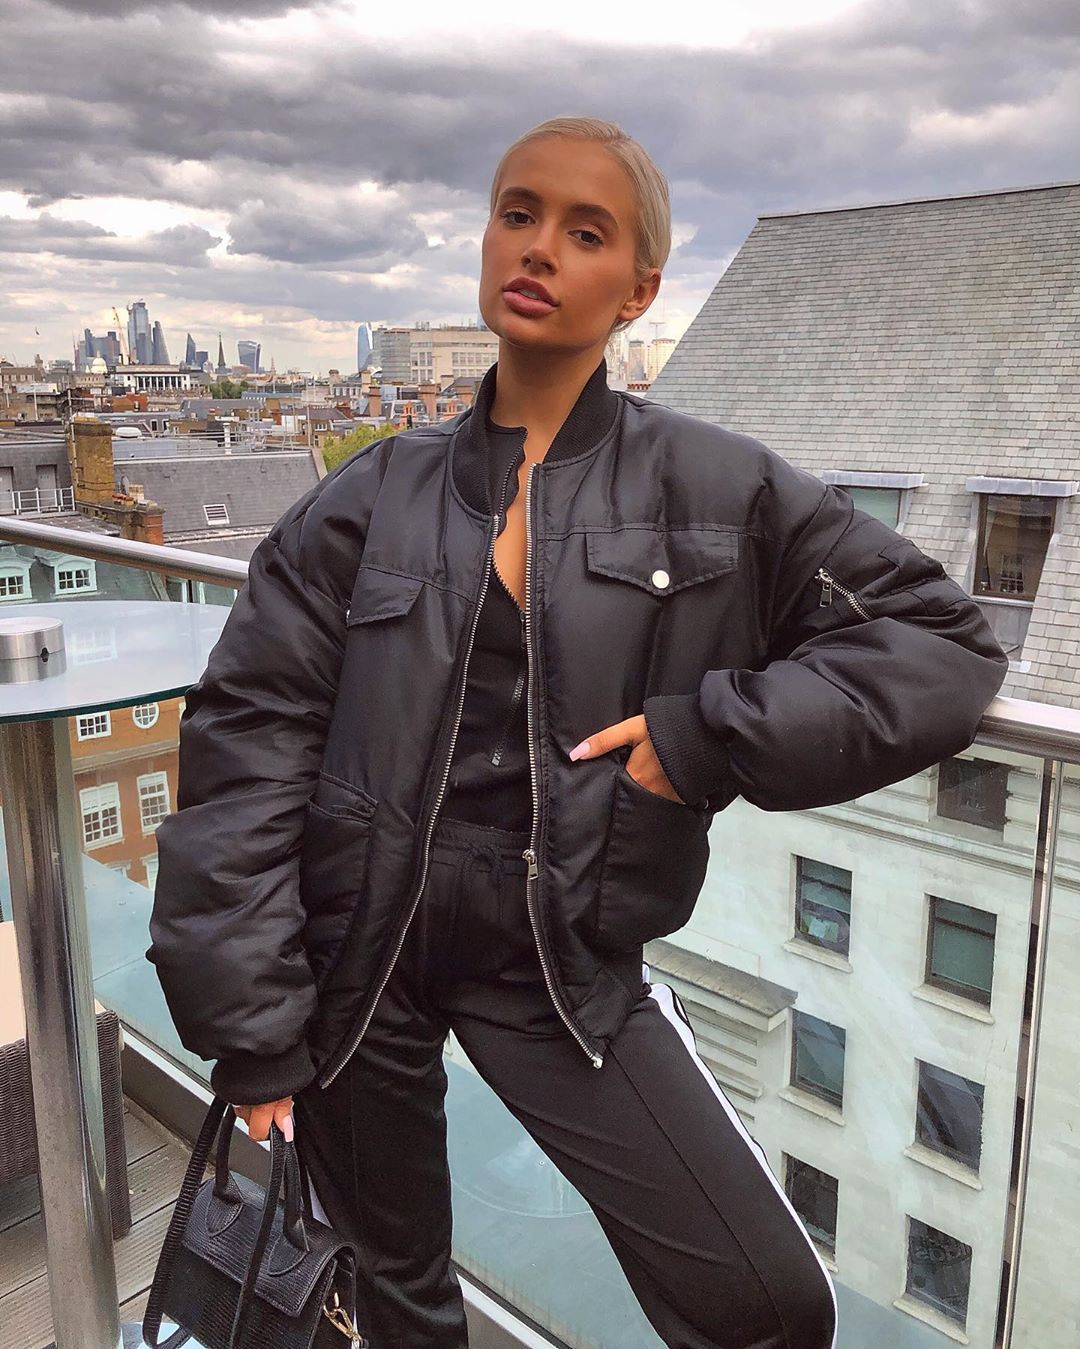 Image may contain: Love Island, gossip, news, latest, rumours, Tommy, Molly-Mae, The May Fair, hotel, London, Blazer, Person, Human, Metropolis, Urban, Building, Town, City, Coat, Jacket, Apparel, Clothing